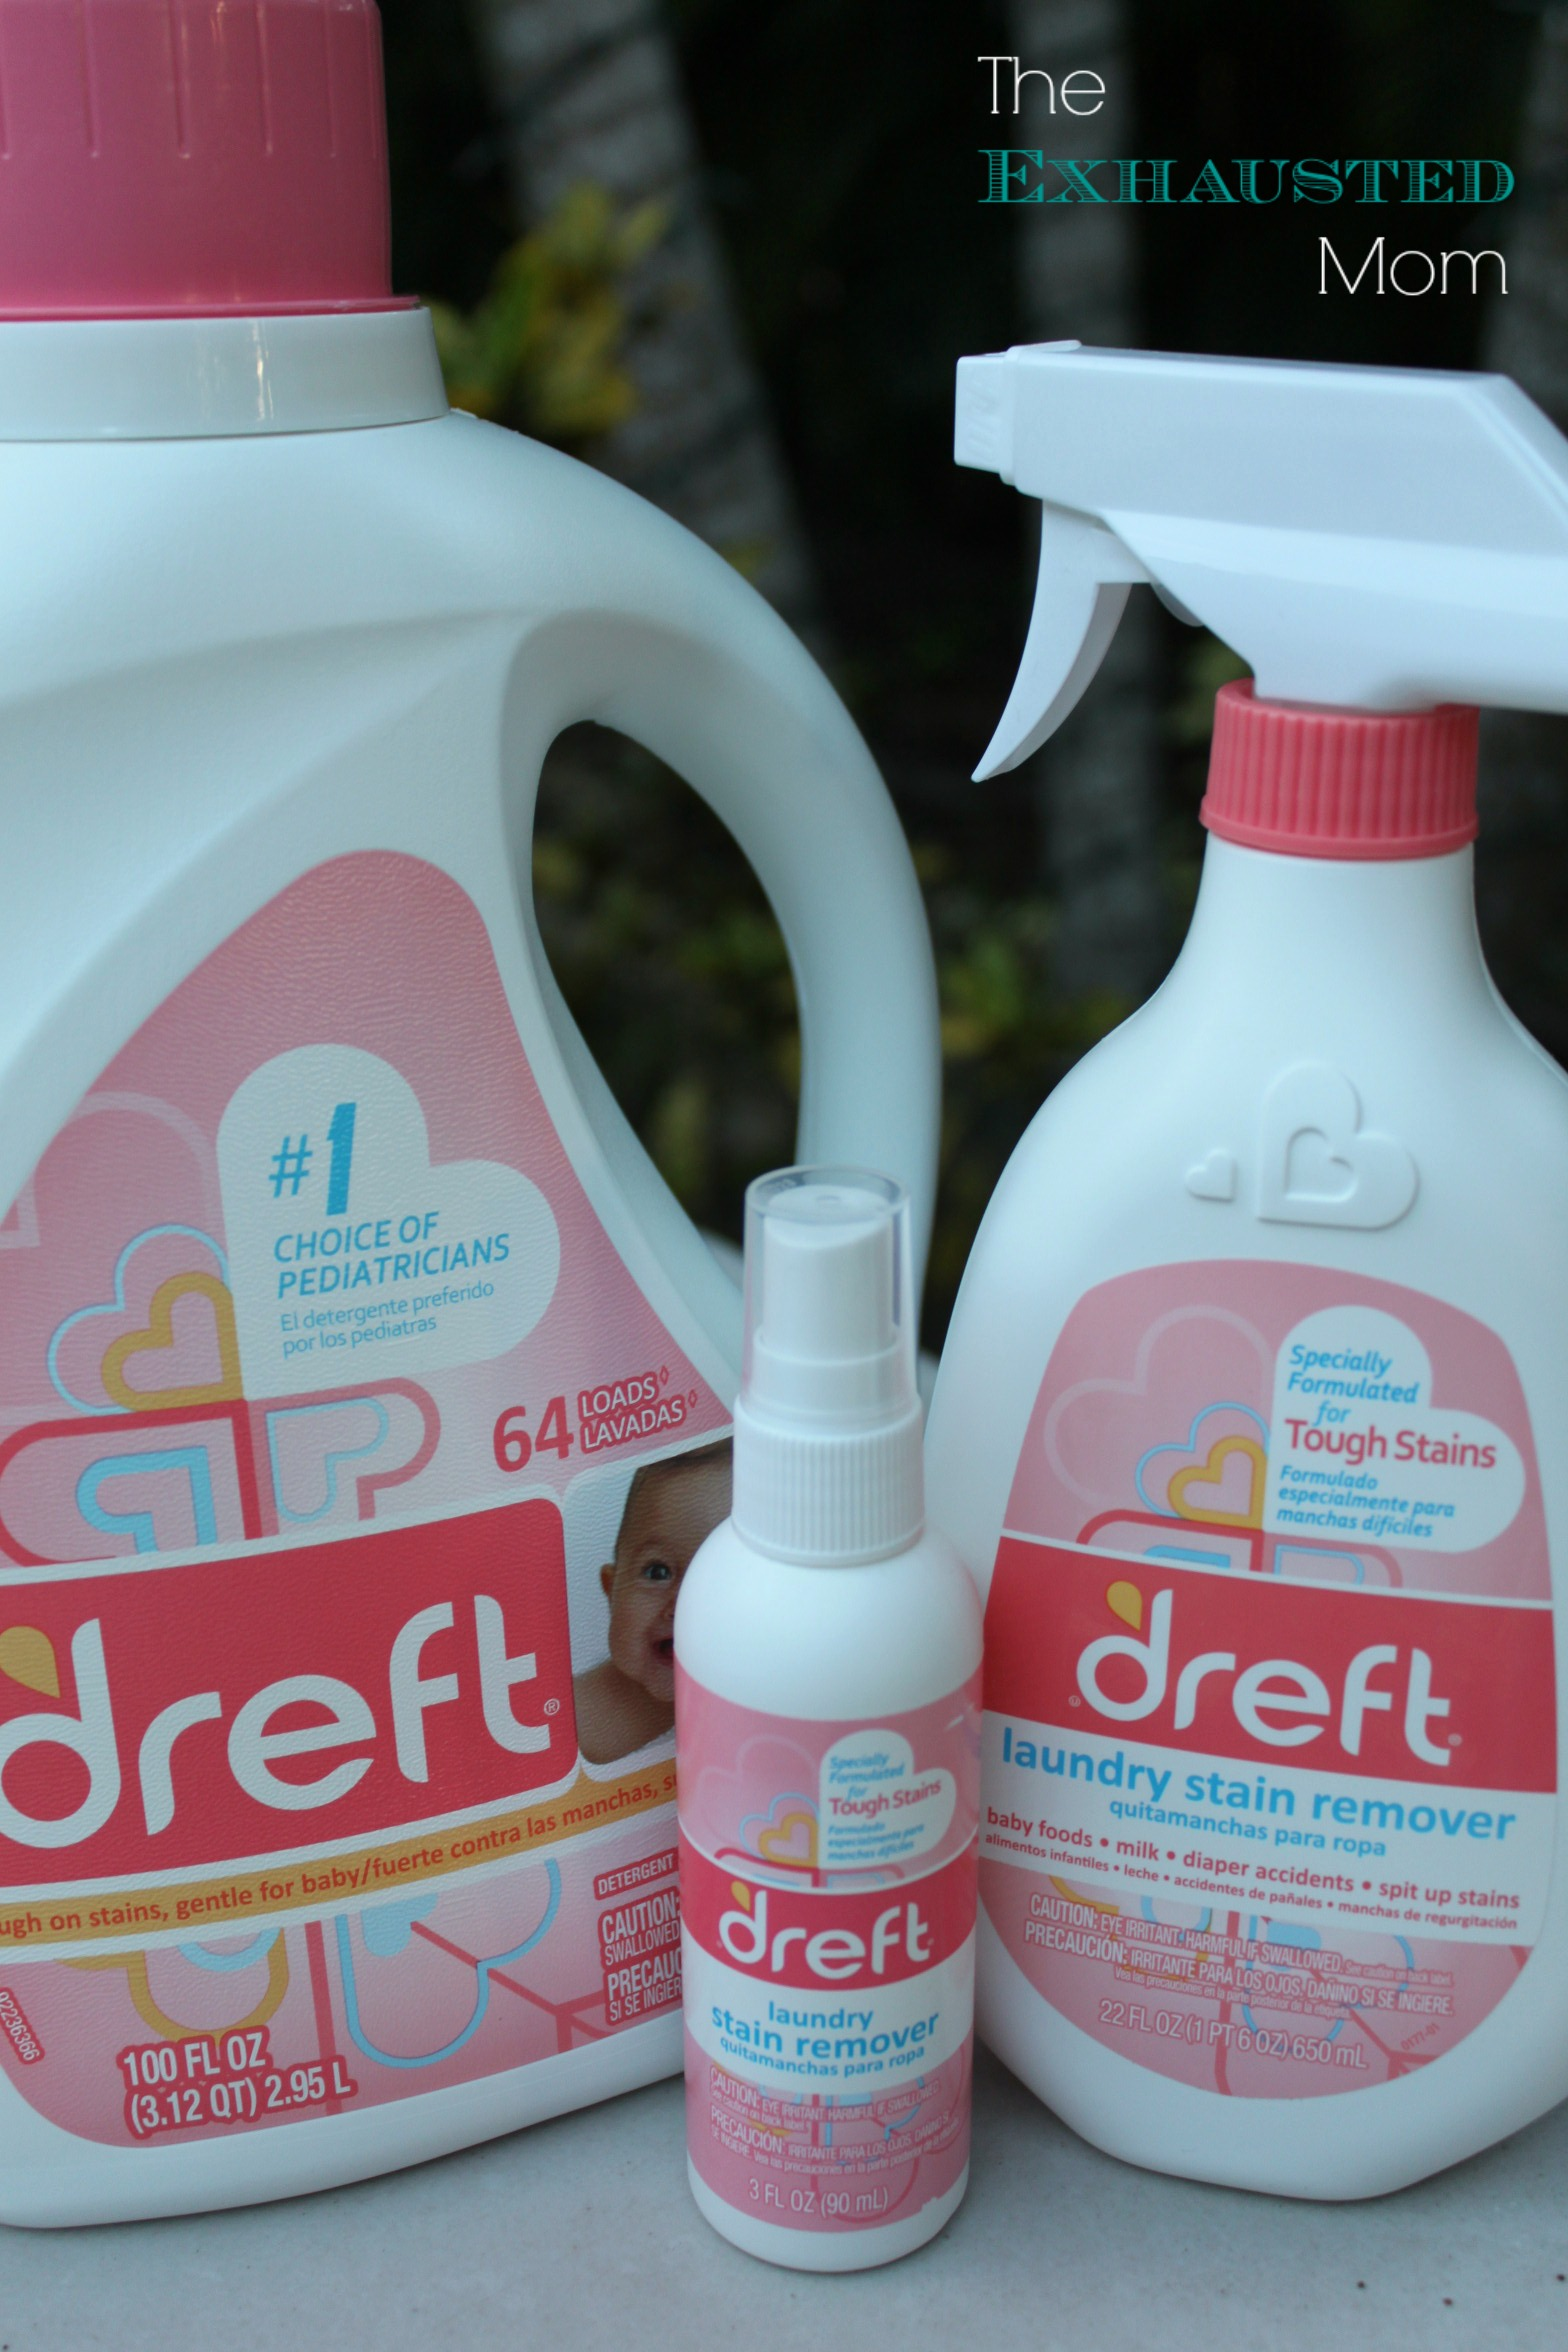 Dreft Detergent is hypoallergenic